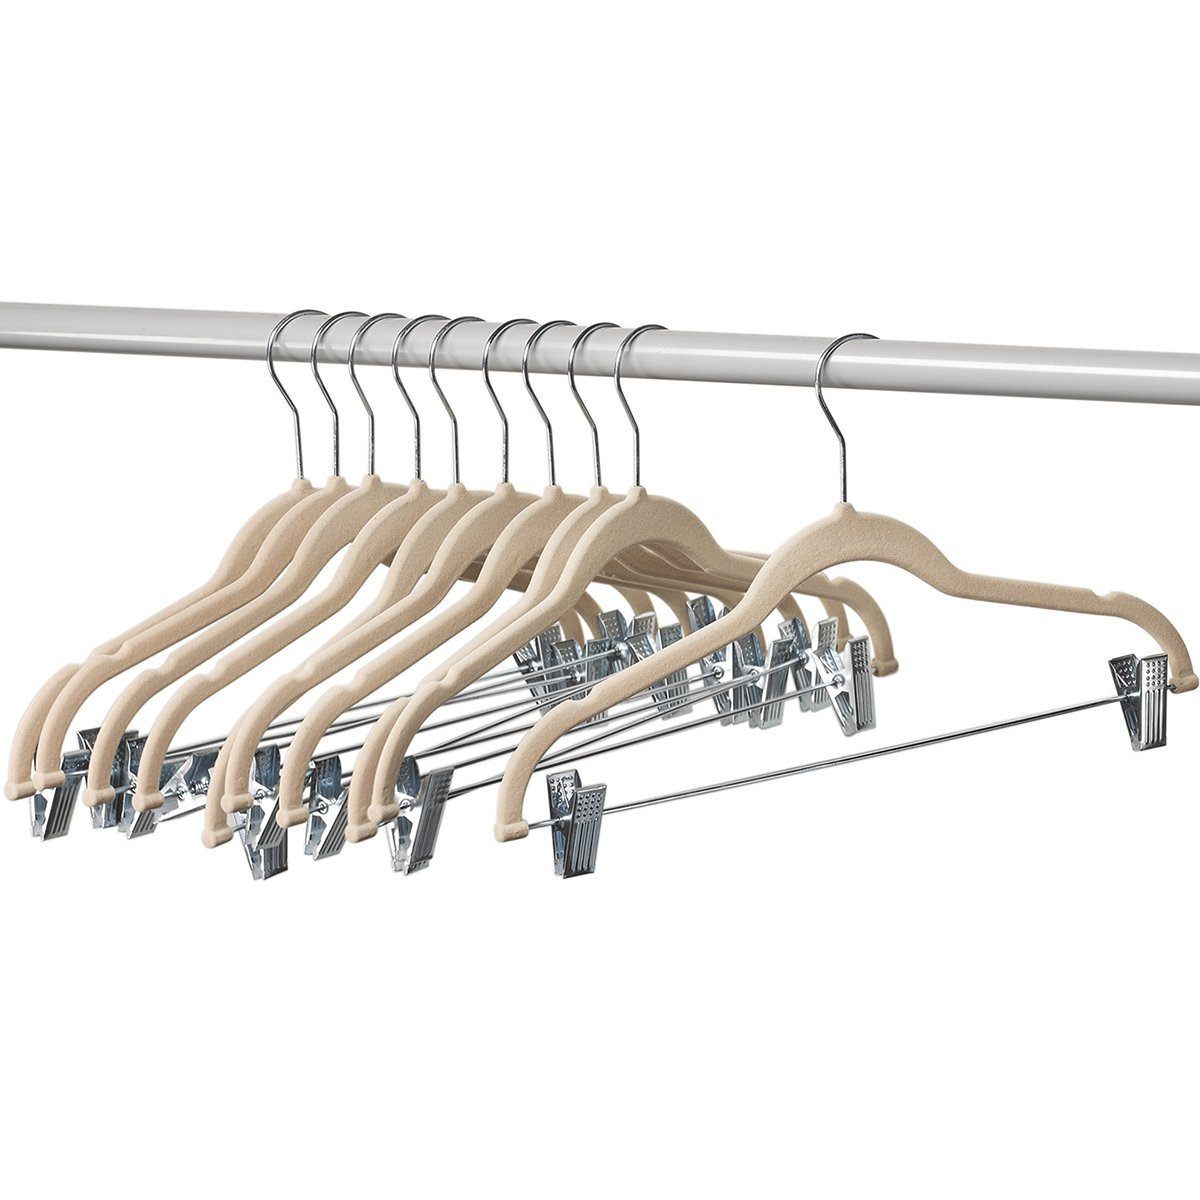 Home-it 10 Pack Clothes Hangers with clips - IVORY Velvet Hangers for skirt hangers - Clothes Hanger - pants hangers - Ultra Thin No Slip SYNCHKG090127